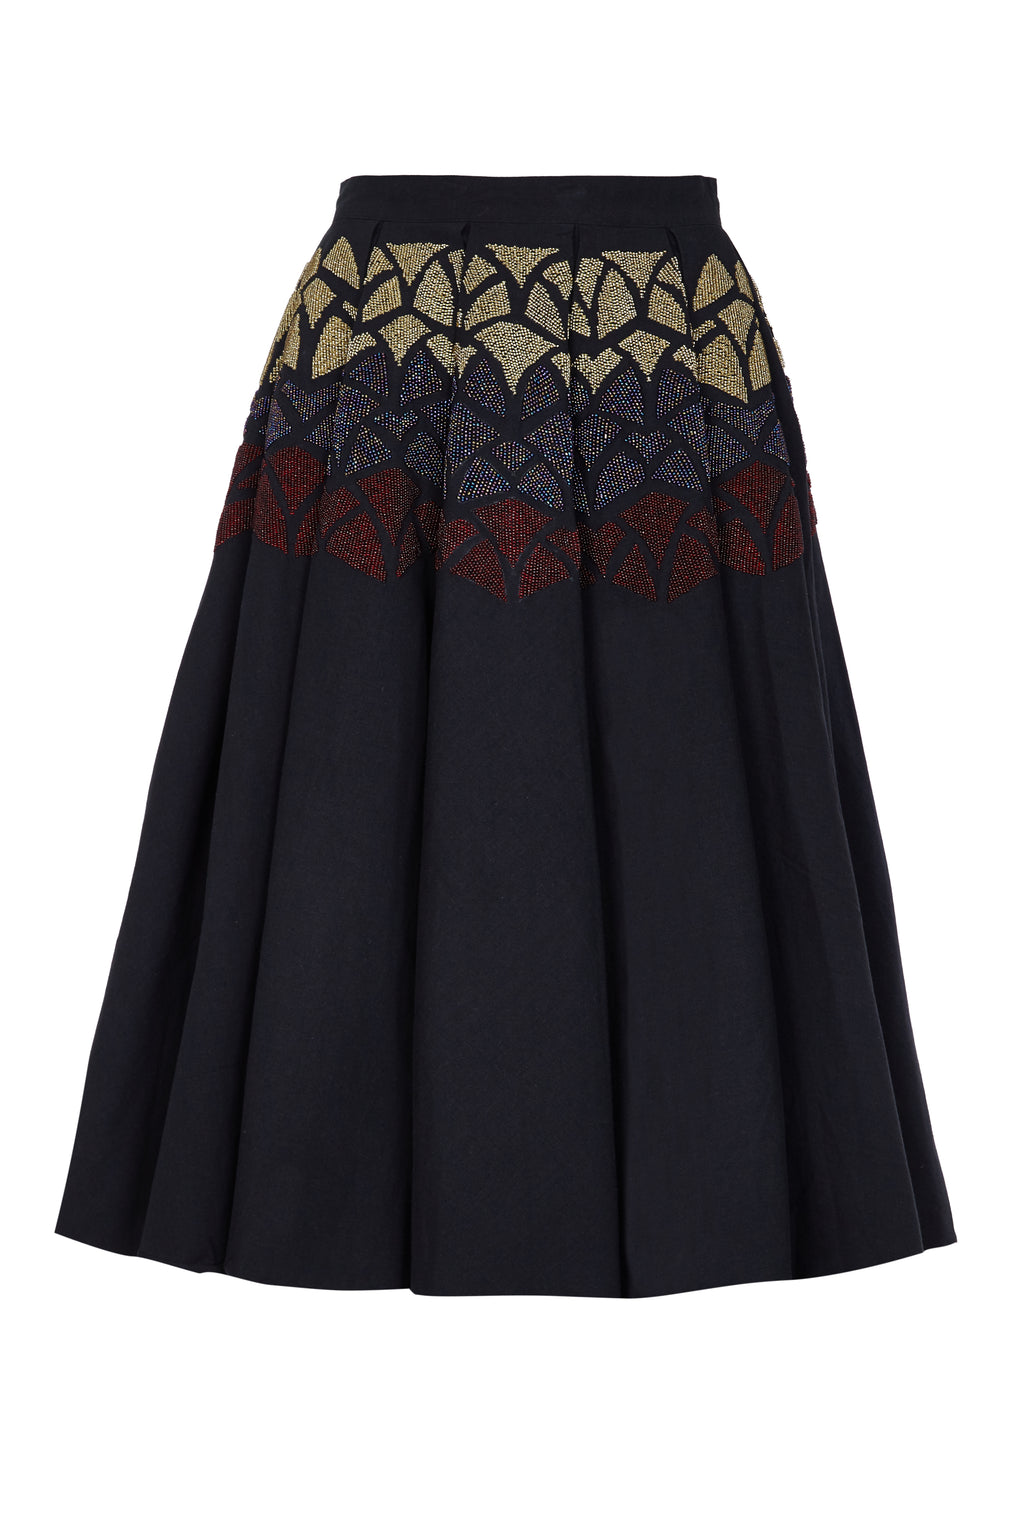 ROSE BEADED BOX PLEAT SKIRT